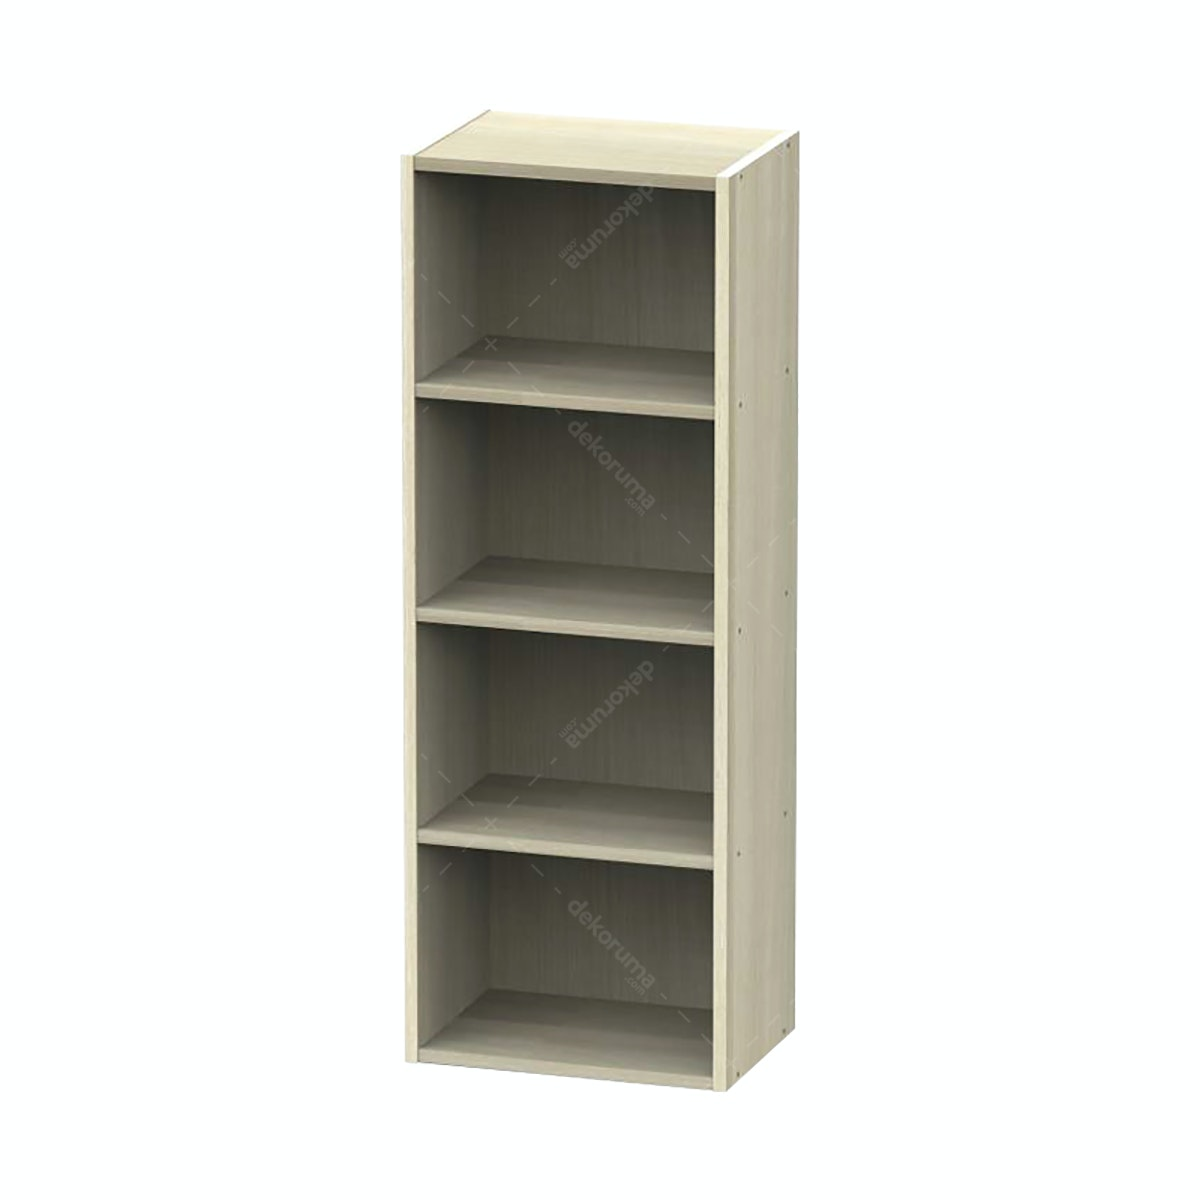 JYSK Bookcase 4 Shelves Canute 42X29X116CM Acacia